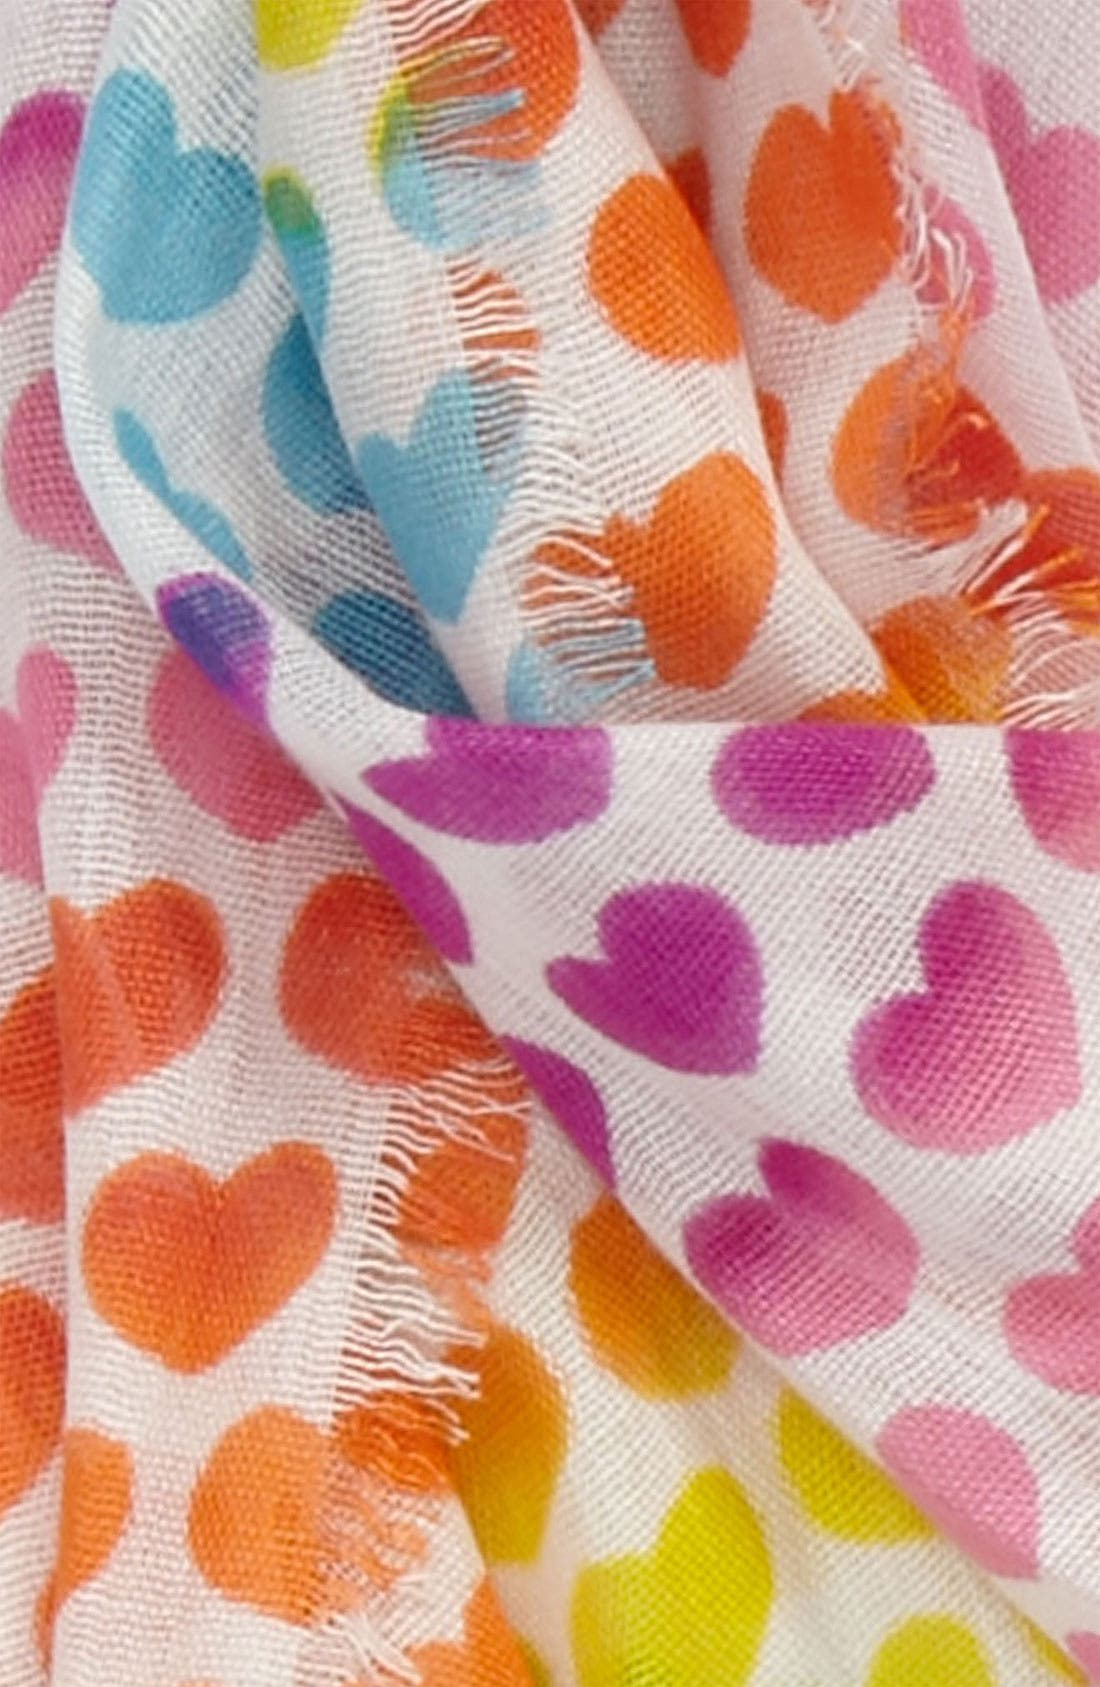 Alternate Image 2  - Peace of Cake 'Rainbow Hearts' Scarf (Girls)